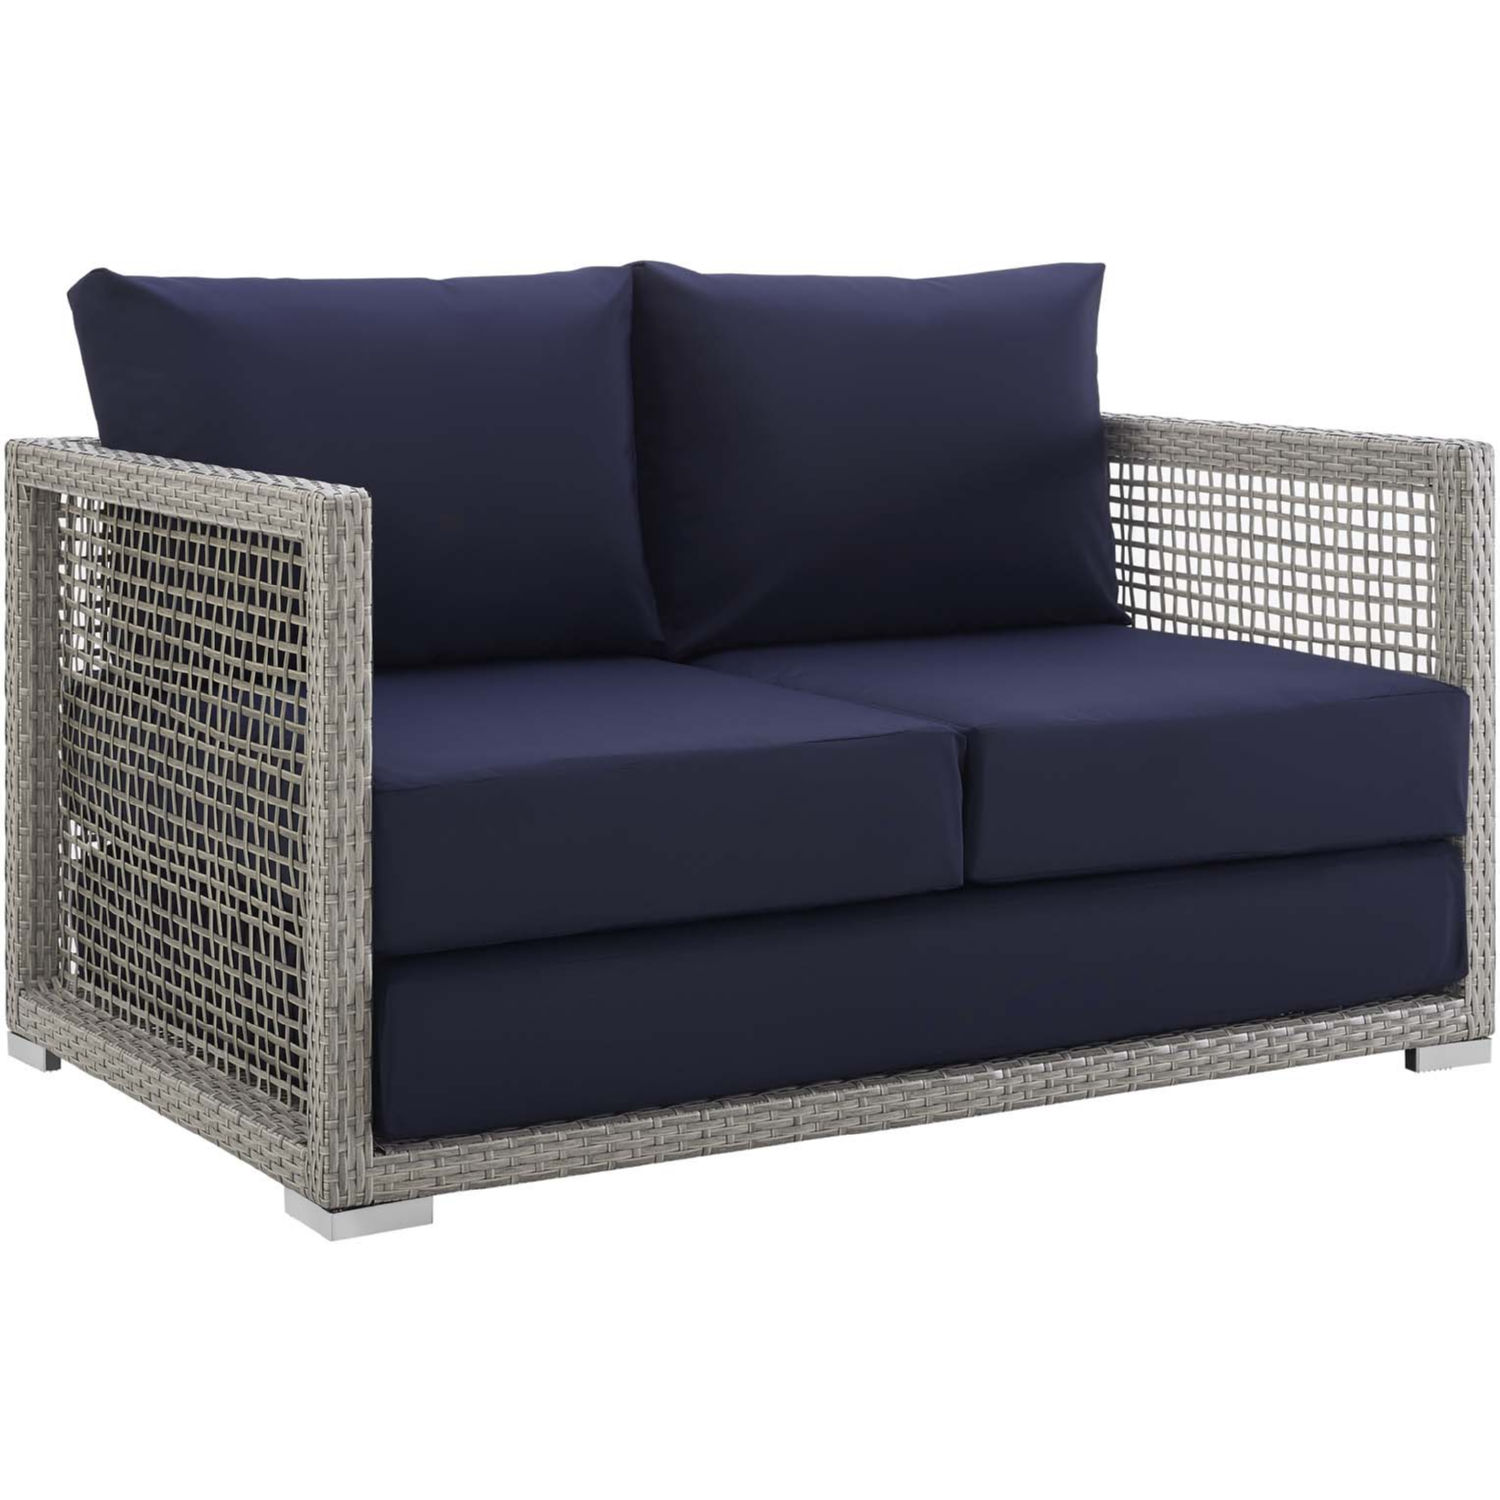 Peachy Aura Outdoor Gray Wicker Rattan Loveseat W Navy Fabric By Modway Pdpeps Interior Chair Design Pdpepsorg